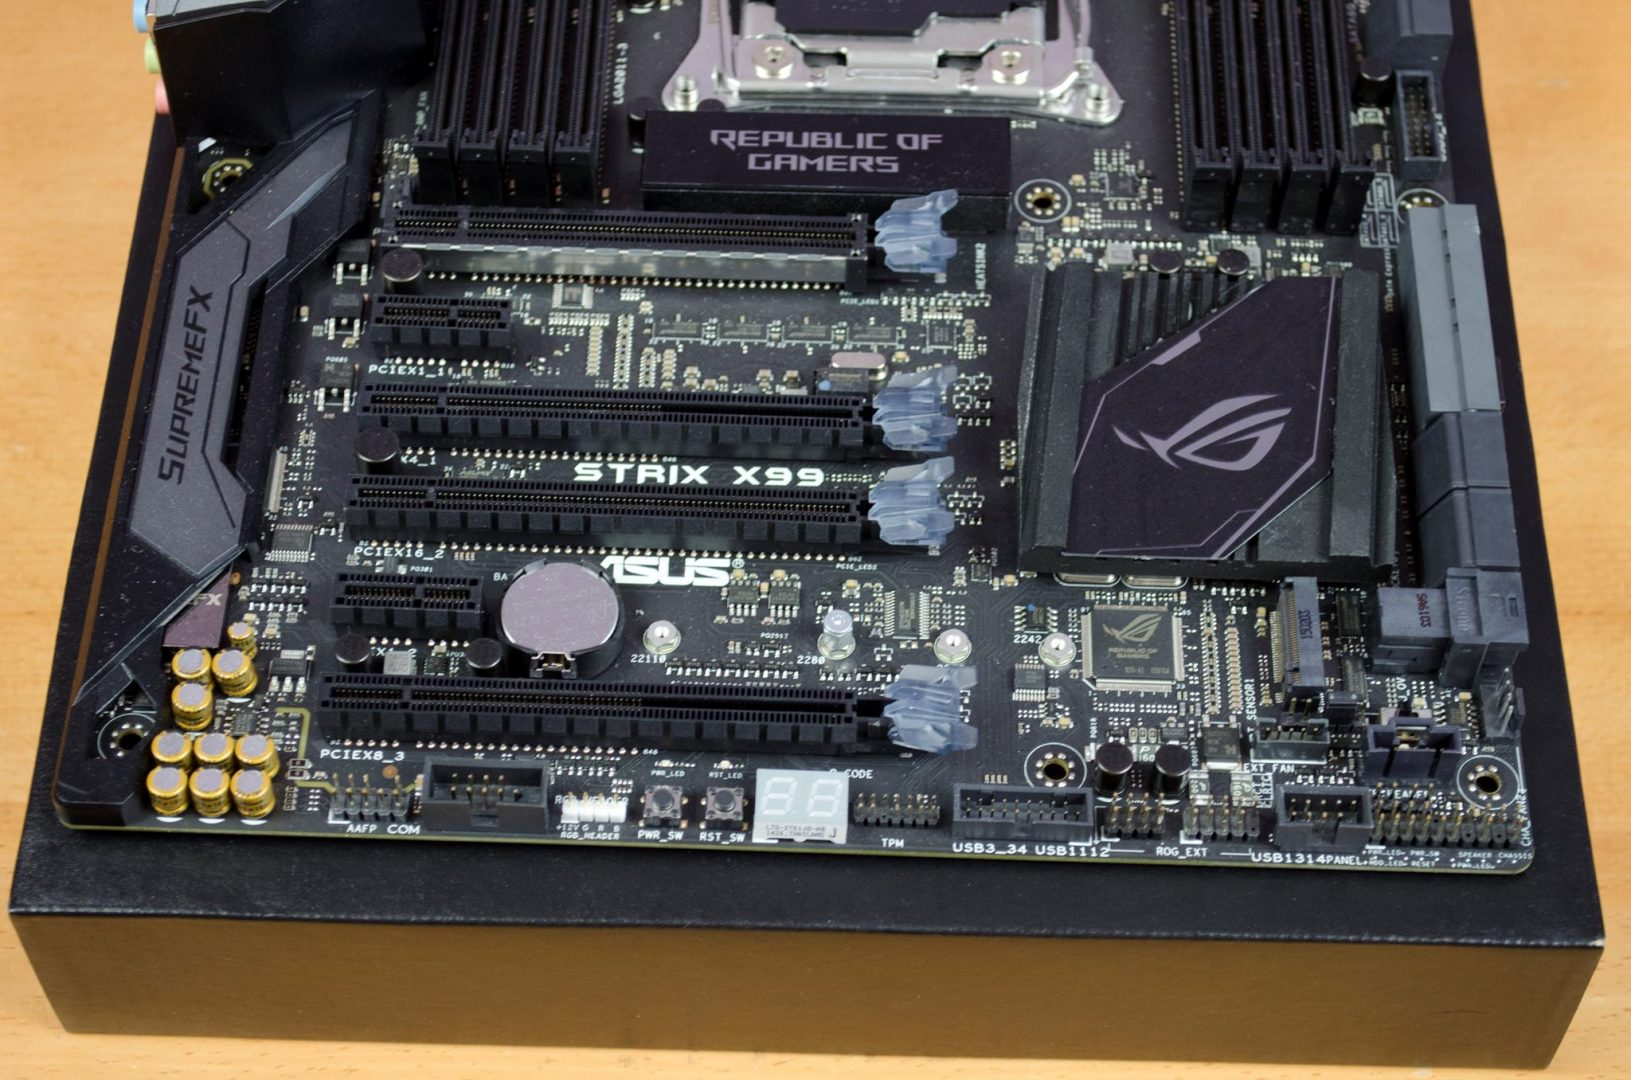 asus rog strix x99 gaming motherboard review_6